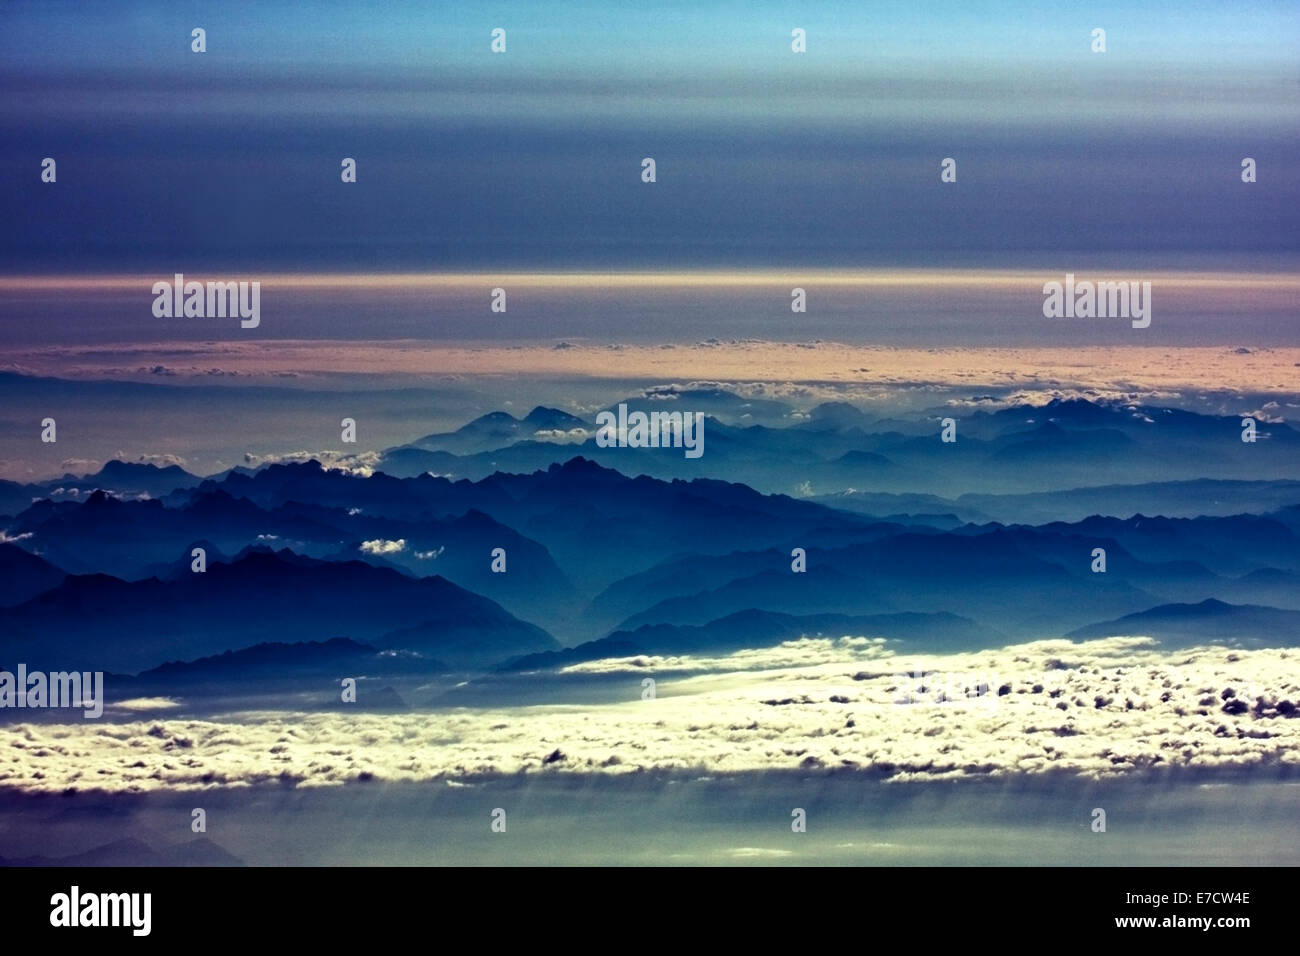 Tranquil view of Alps, Austria Stock Photo